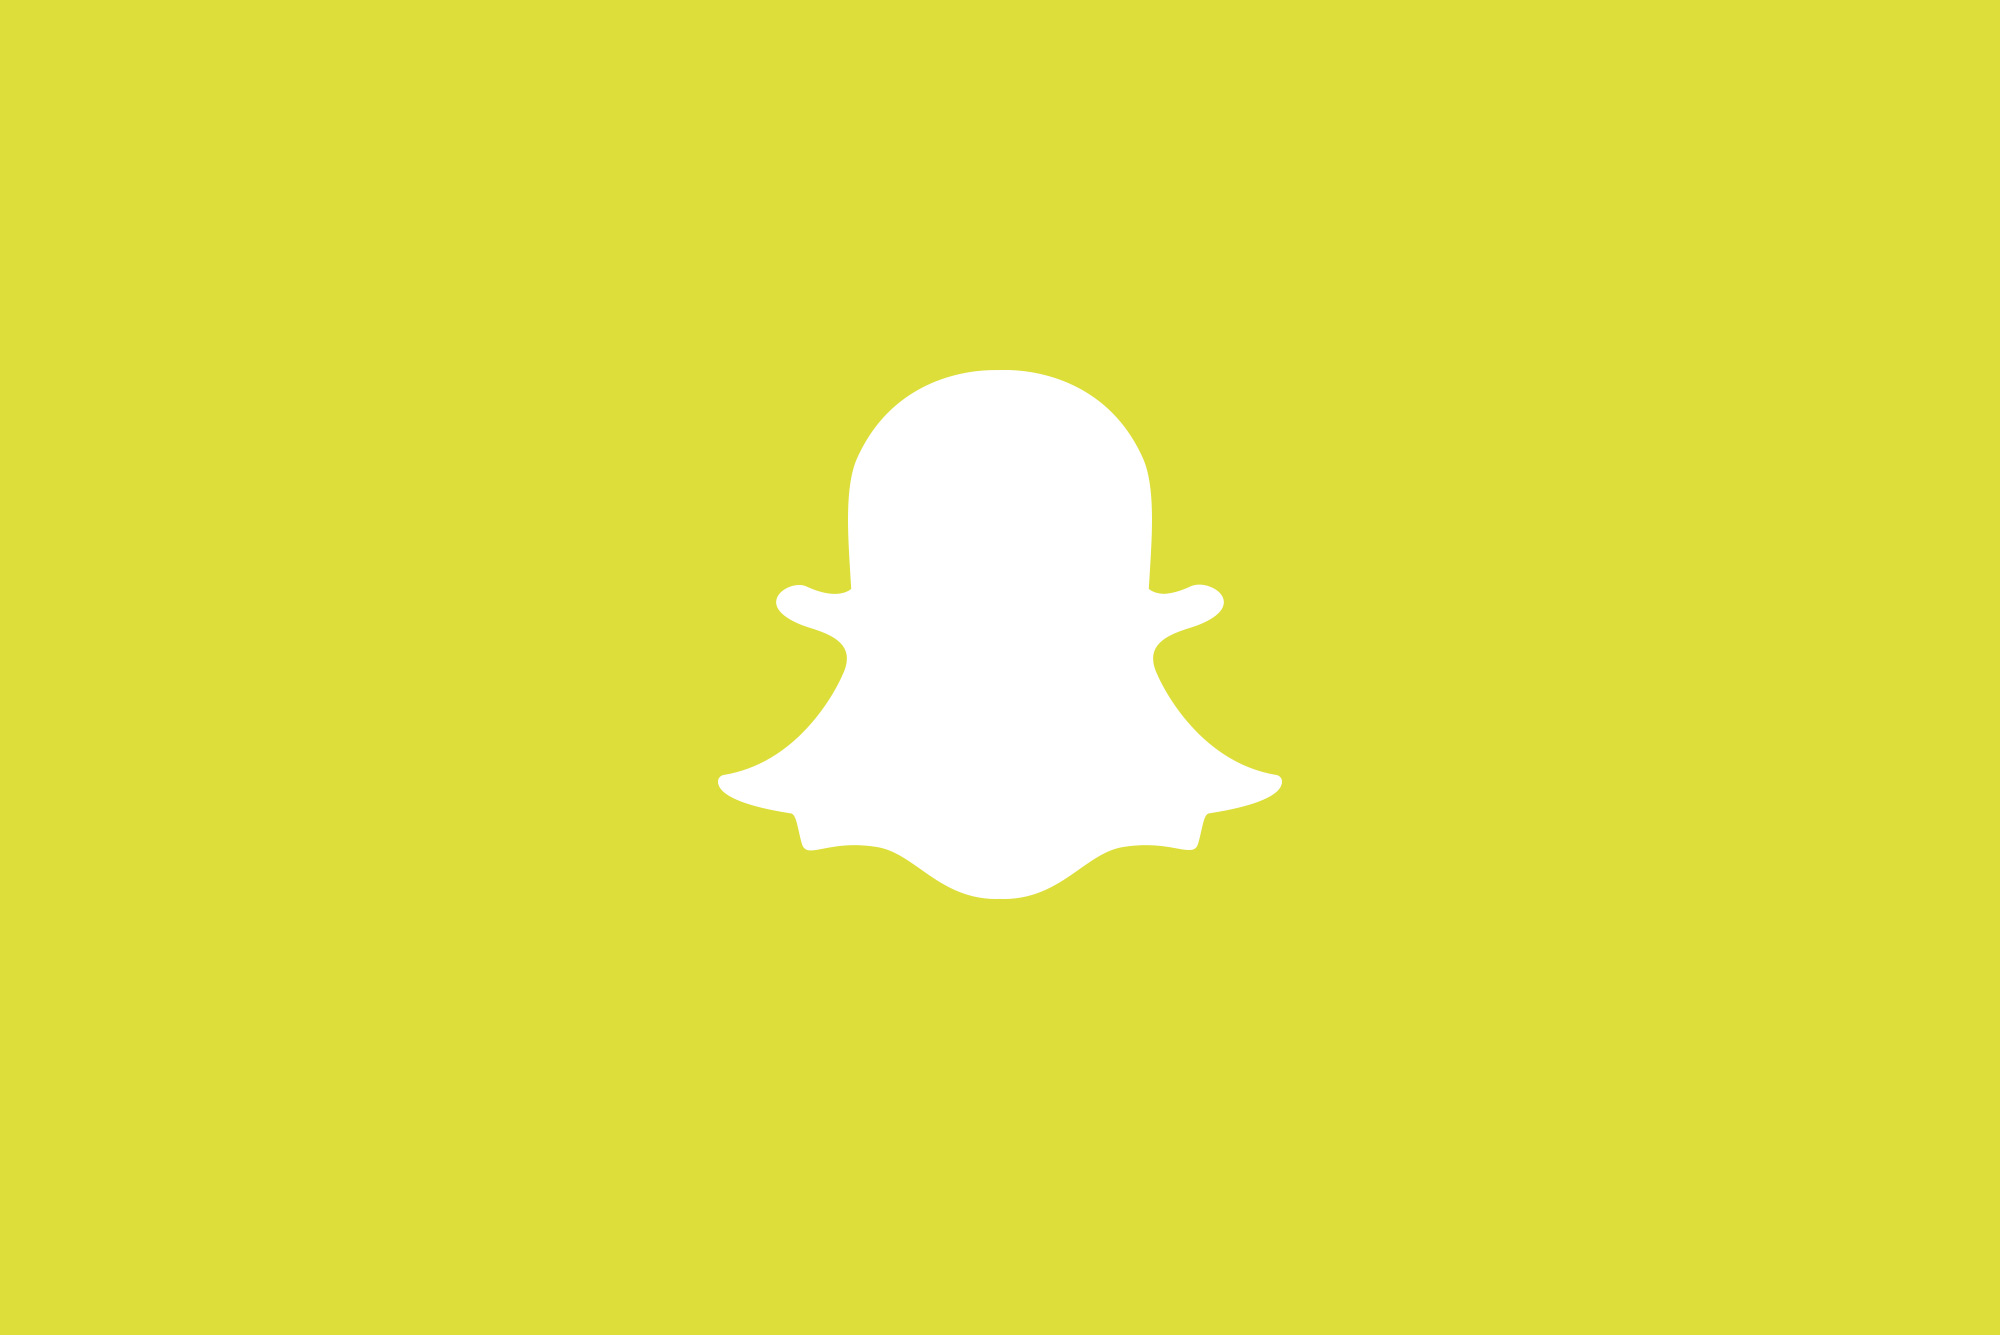 Snapchat icon on yellow background